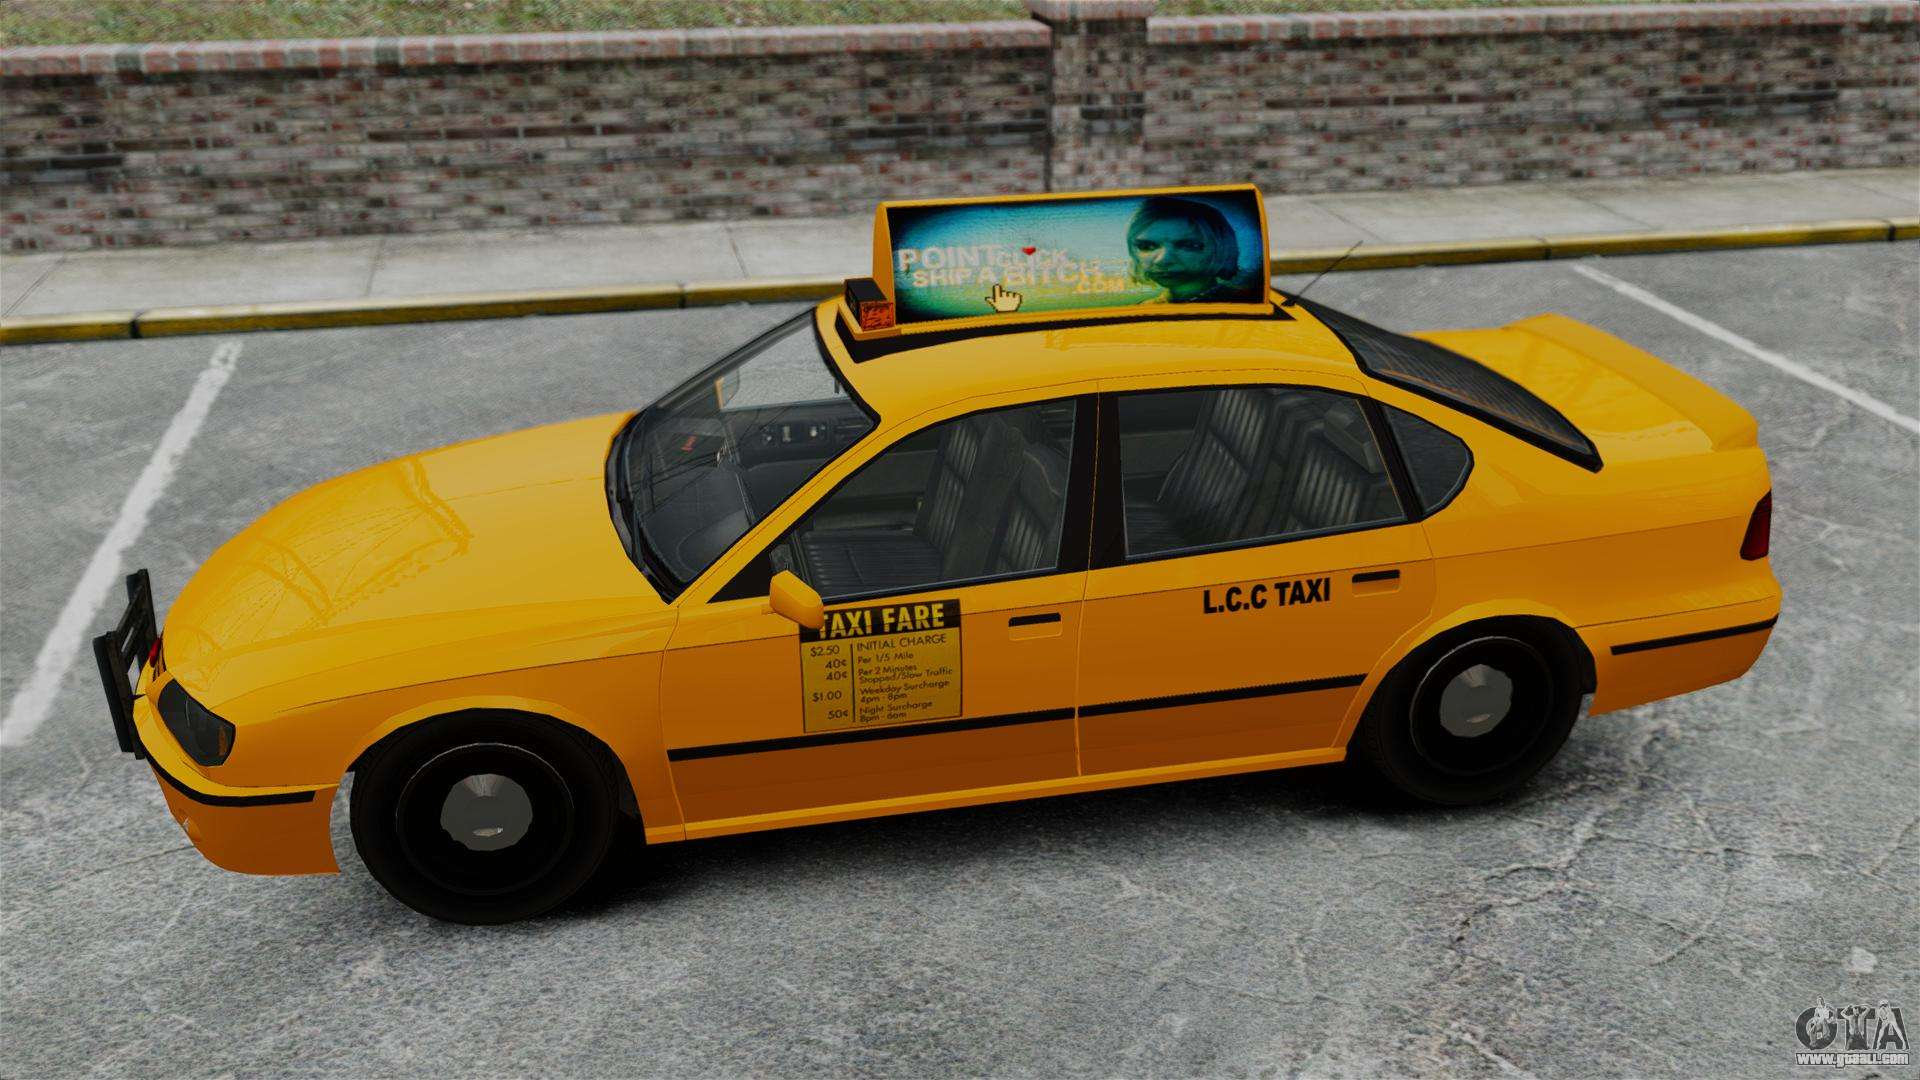 How to call taxi in gta